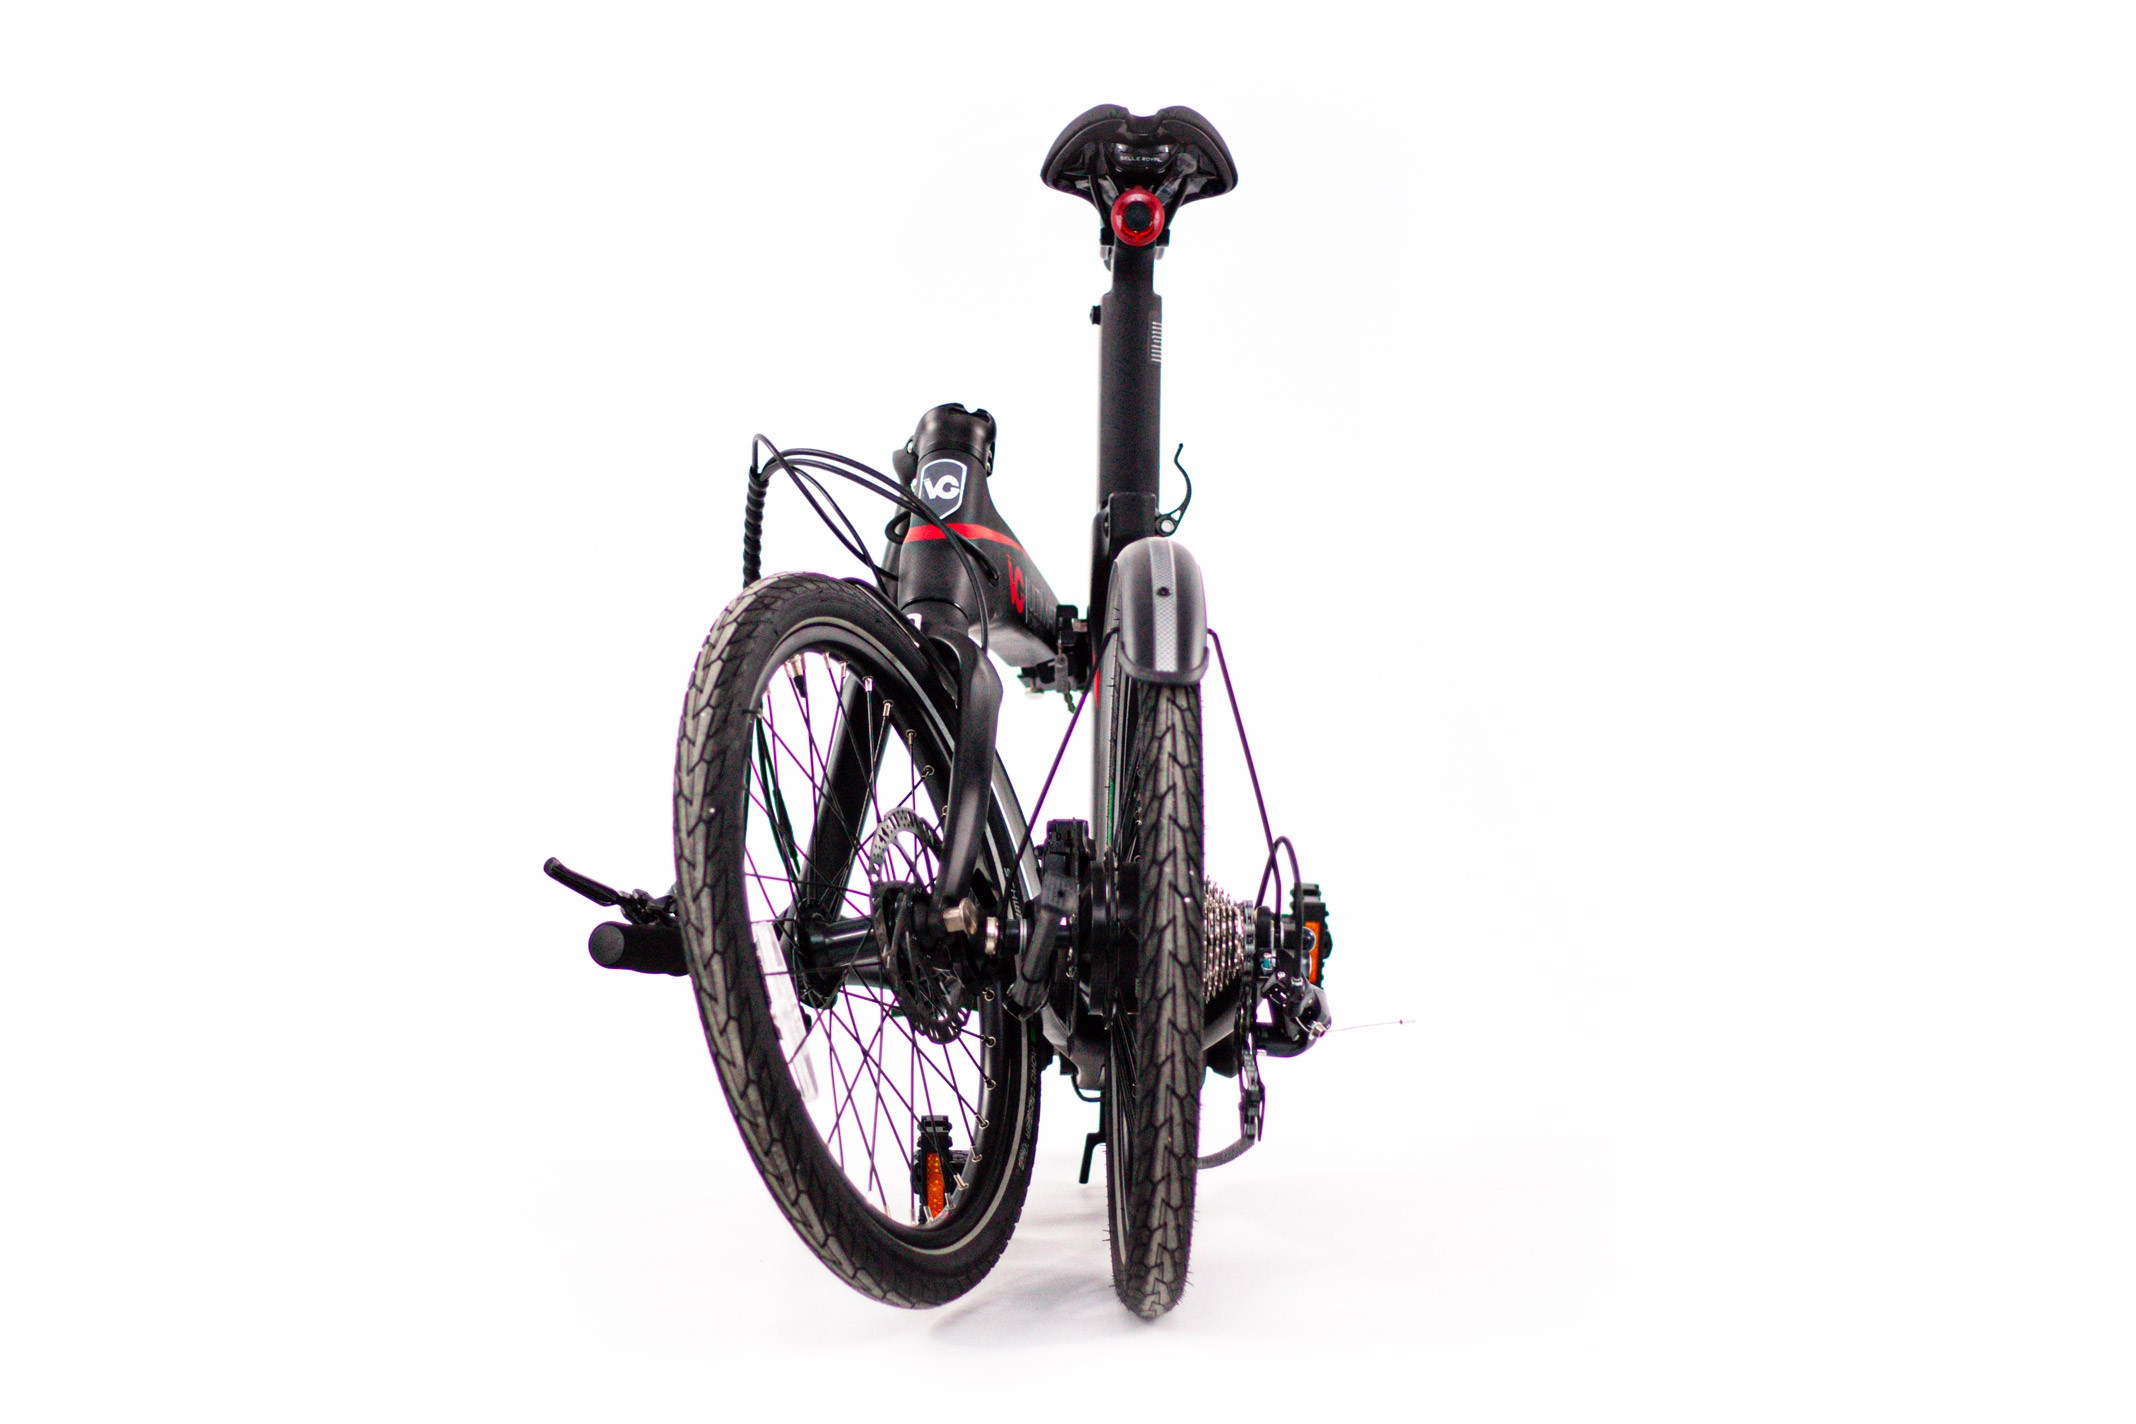 https://w8w5m3f8.stackpathcdn.com/22820/velo-electrique-pliant-vg-bikes-ultimate-carbon-378wh.jpg